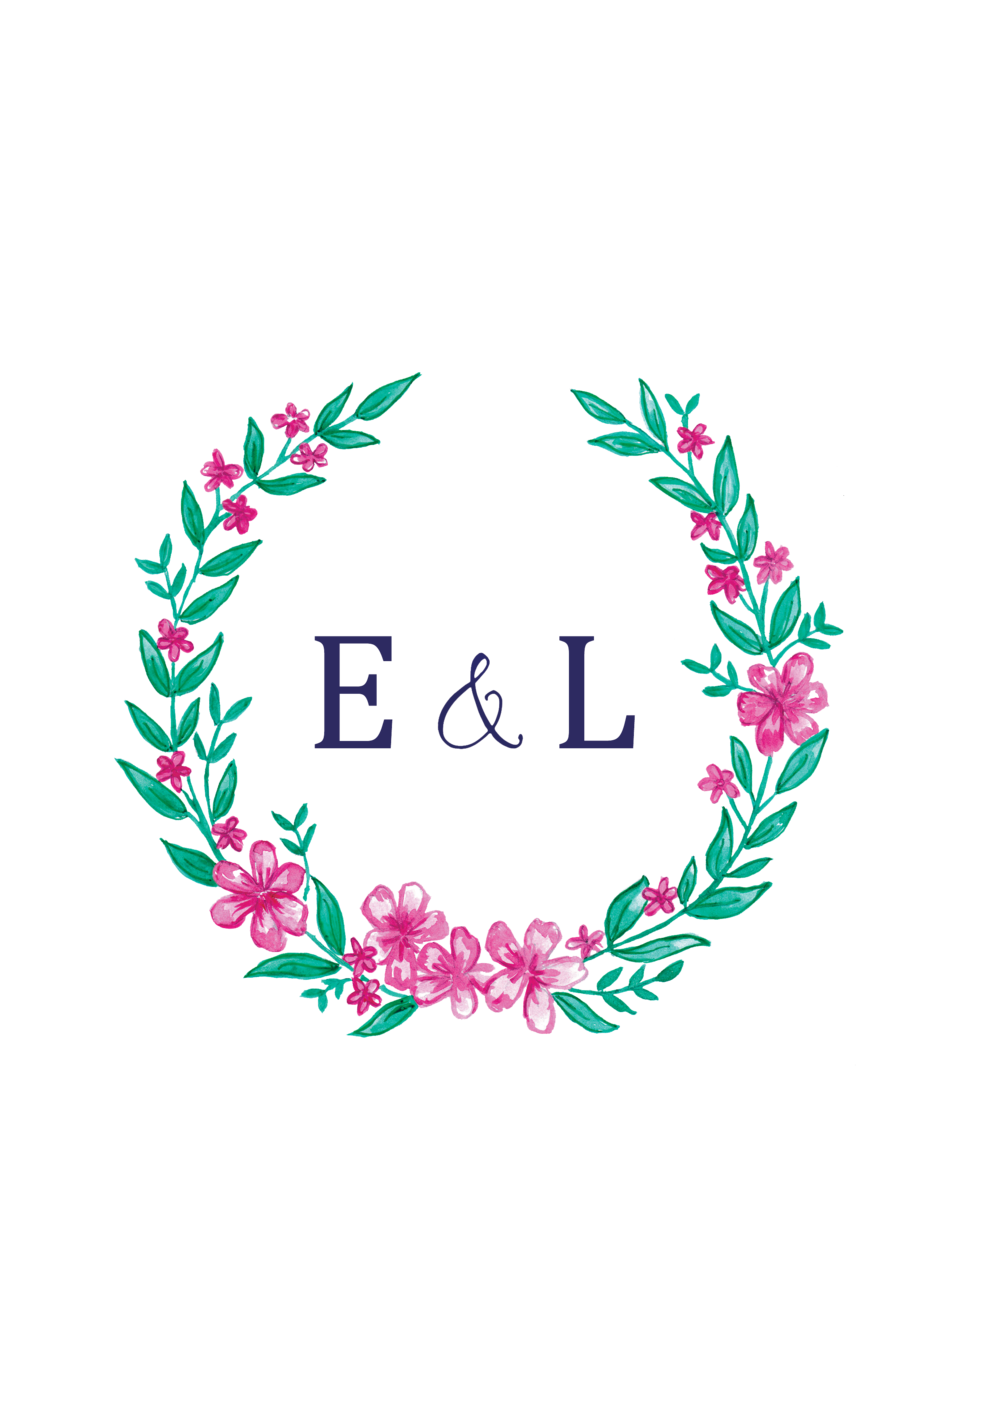 E+L-Wedding-Emblem.png